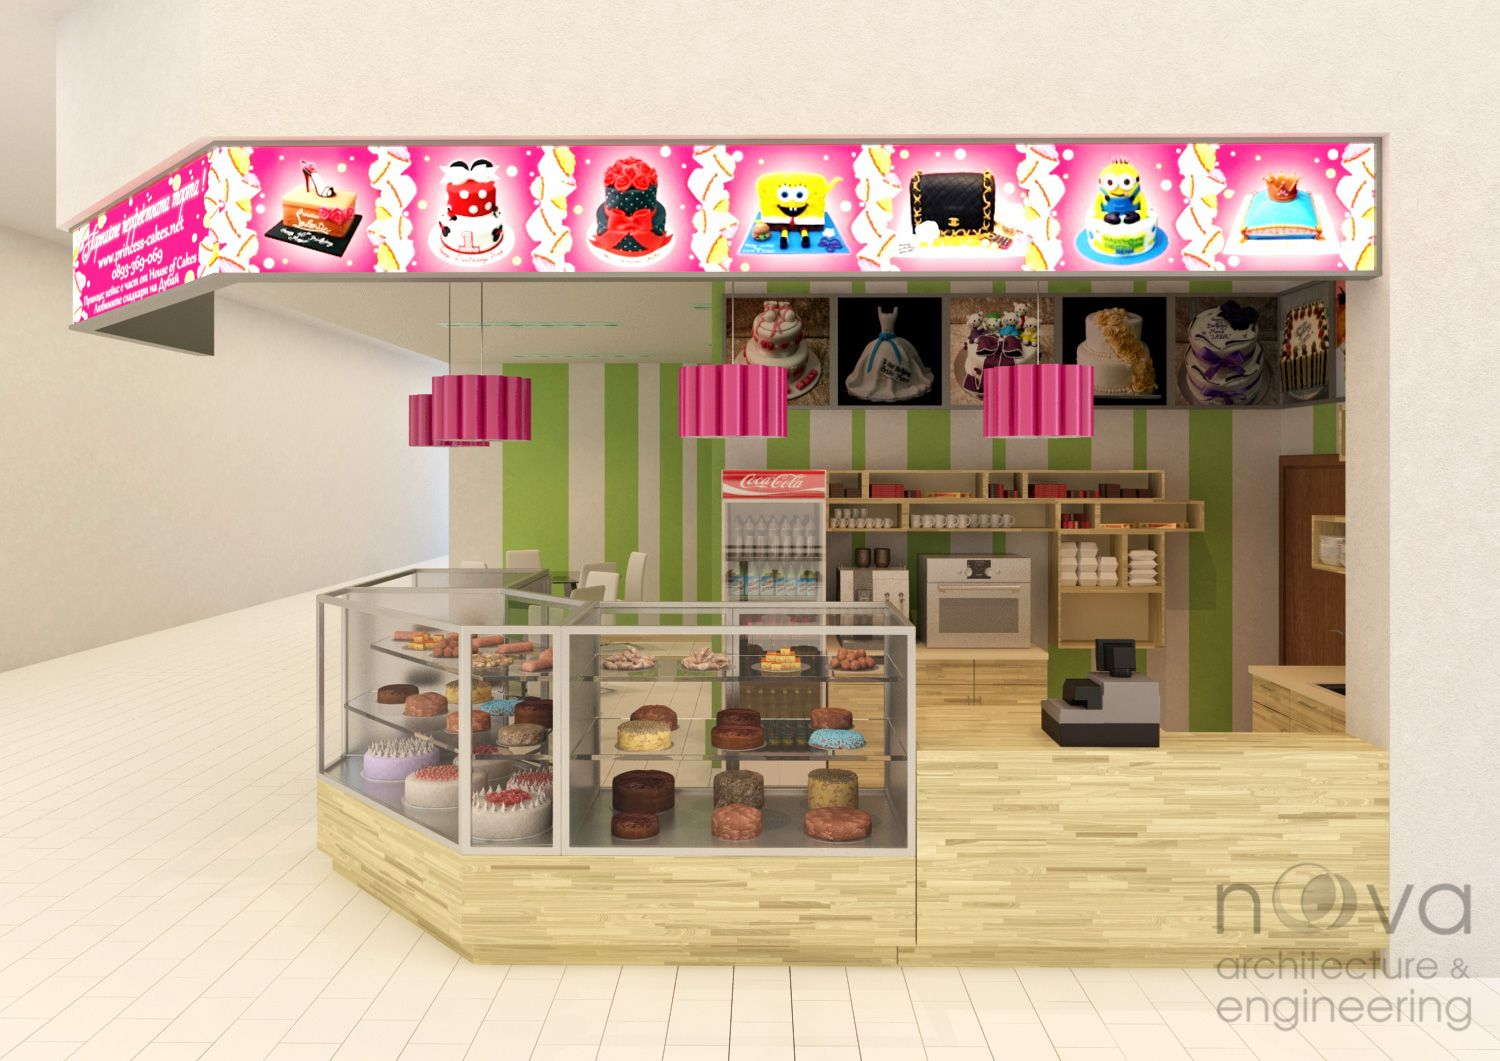 NOVA Architecture and Engineering - Interior design of candy shop